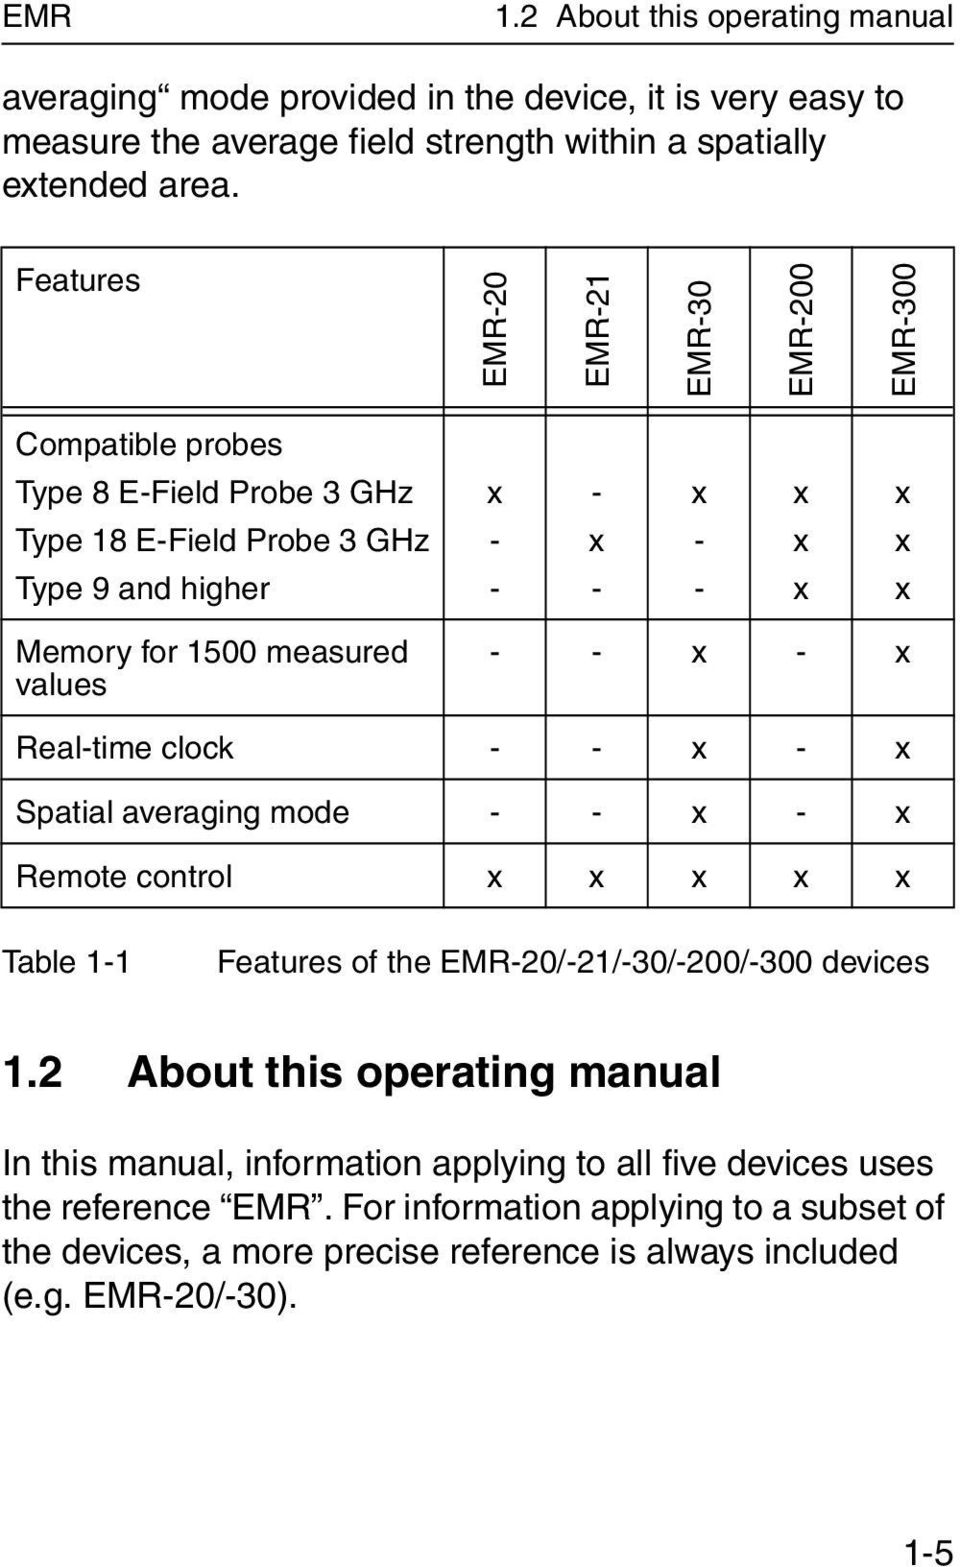 measured values - - x - x Real-time clock - - x - x Spatial averaging mode - - x - x Remote control x x x x x Table 1-1 Features of the EMR-20/-21/-30/-200/-300 devices 1.